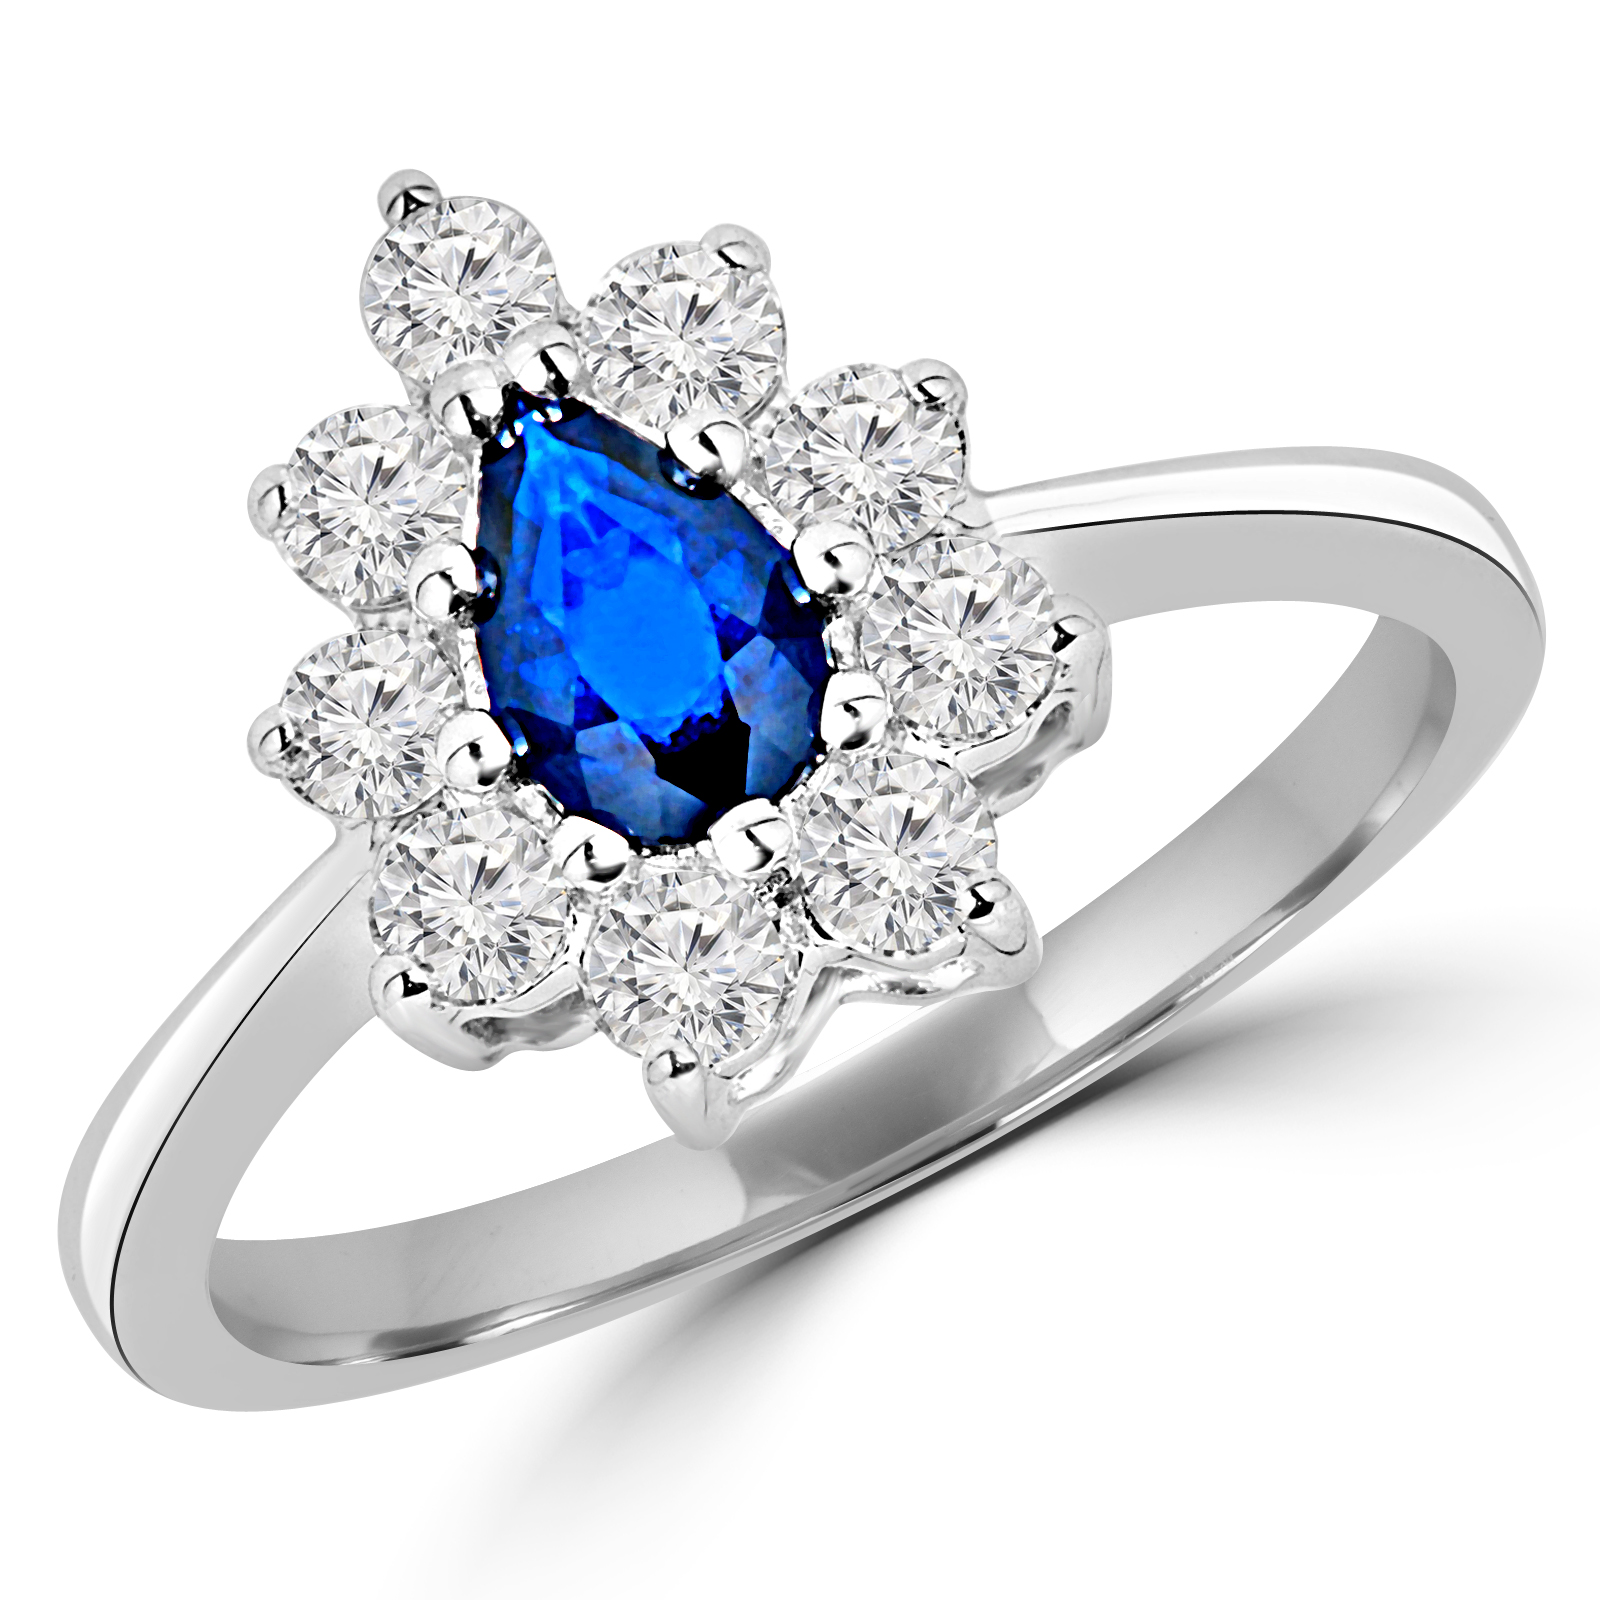 in rings wedding nouveau art ring gemstone engagement diamond product style aquamarine